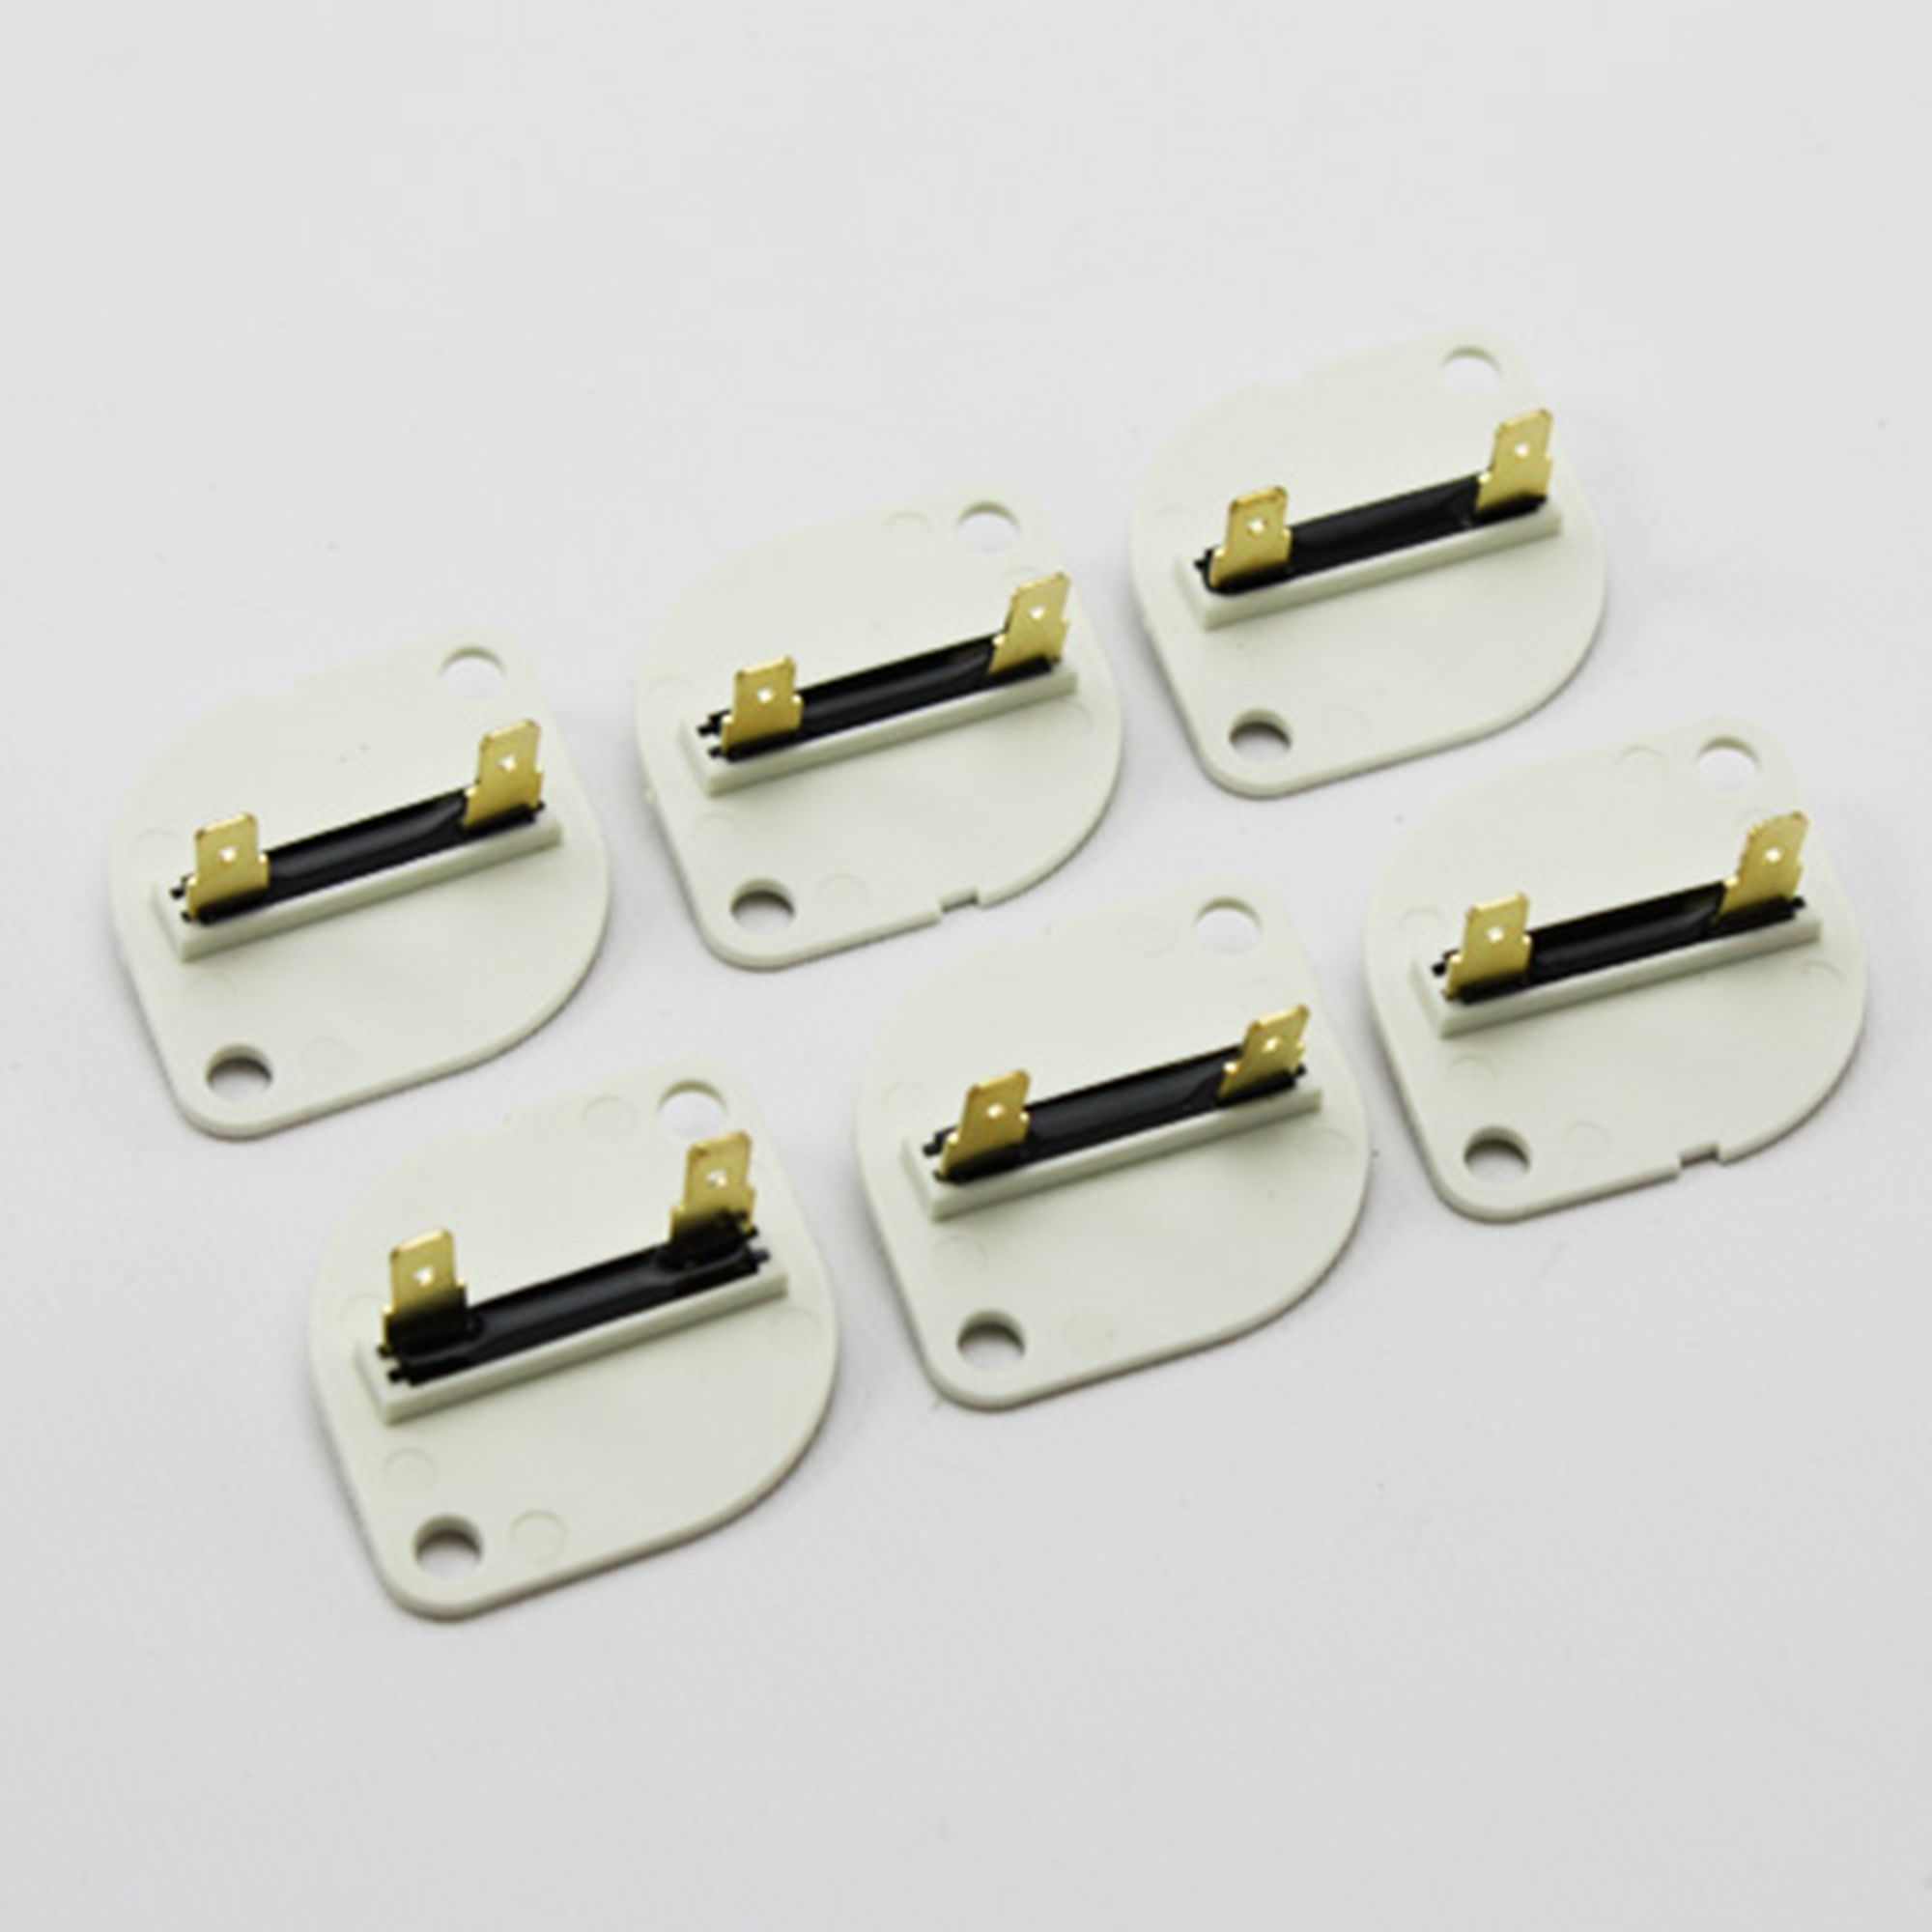 6 Pack Of Replacement Fuses For 3390719 279650 Whirlpool Kenmore 660877 Dryers